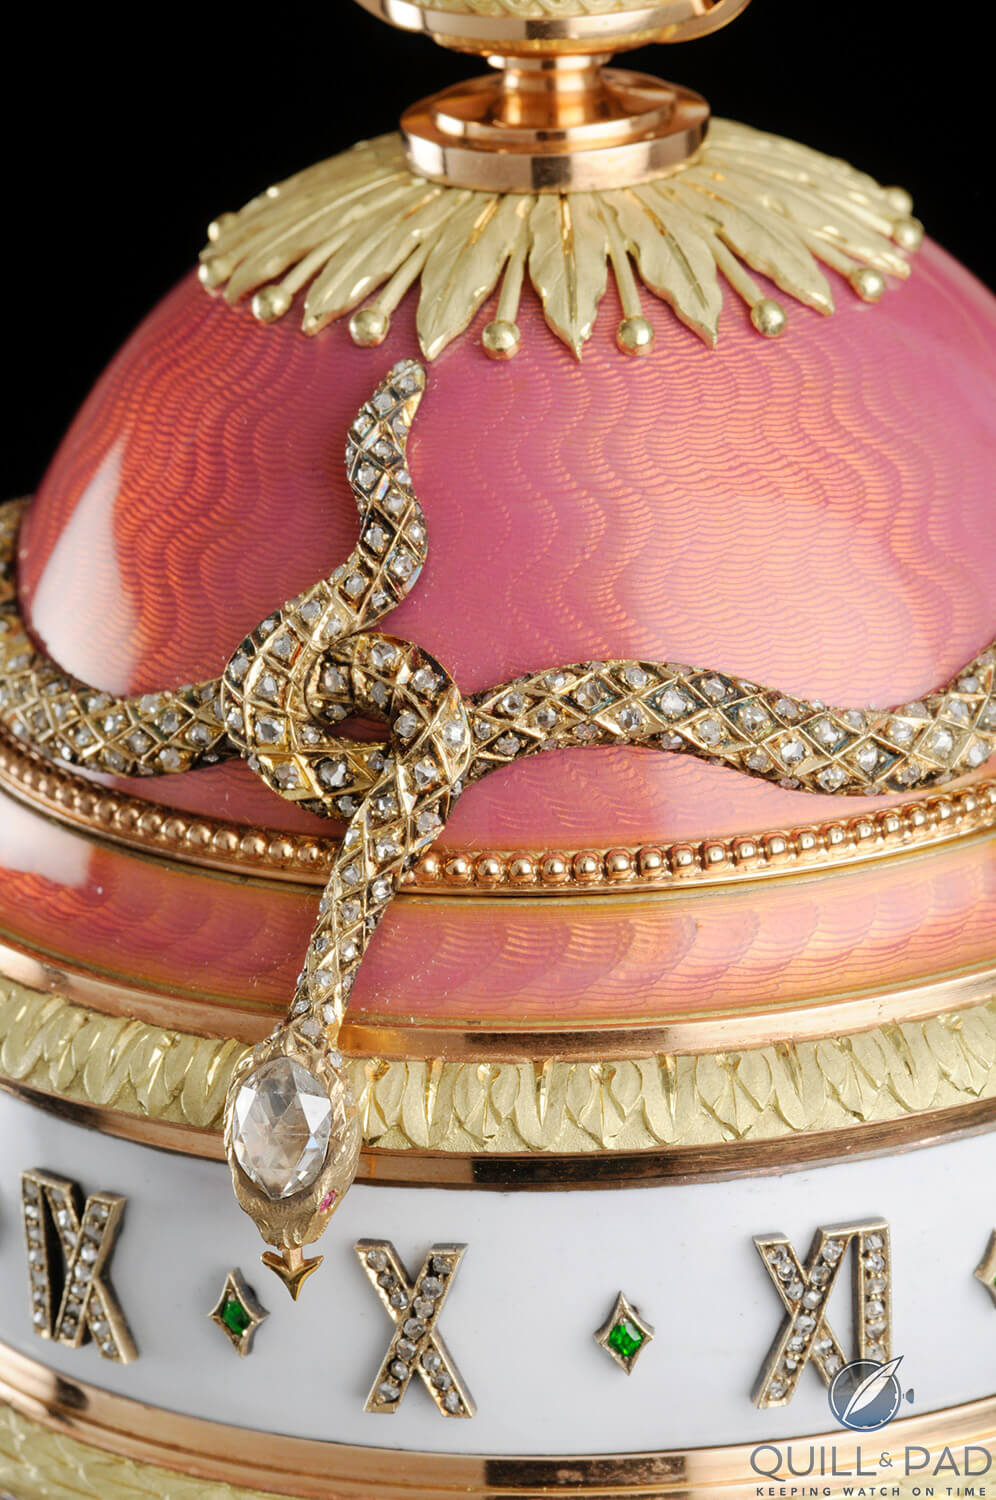 The diamond-set head of the serpent indicates the hours on the Yusupov Fabergé Egg